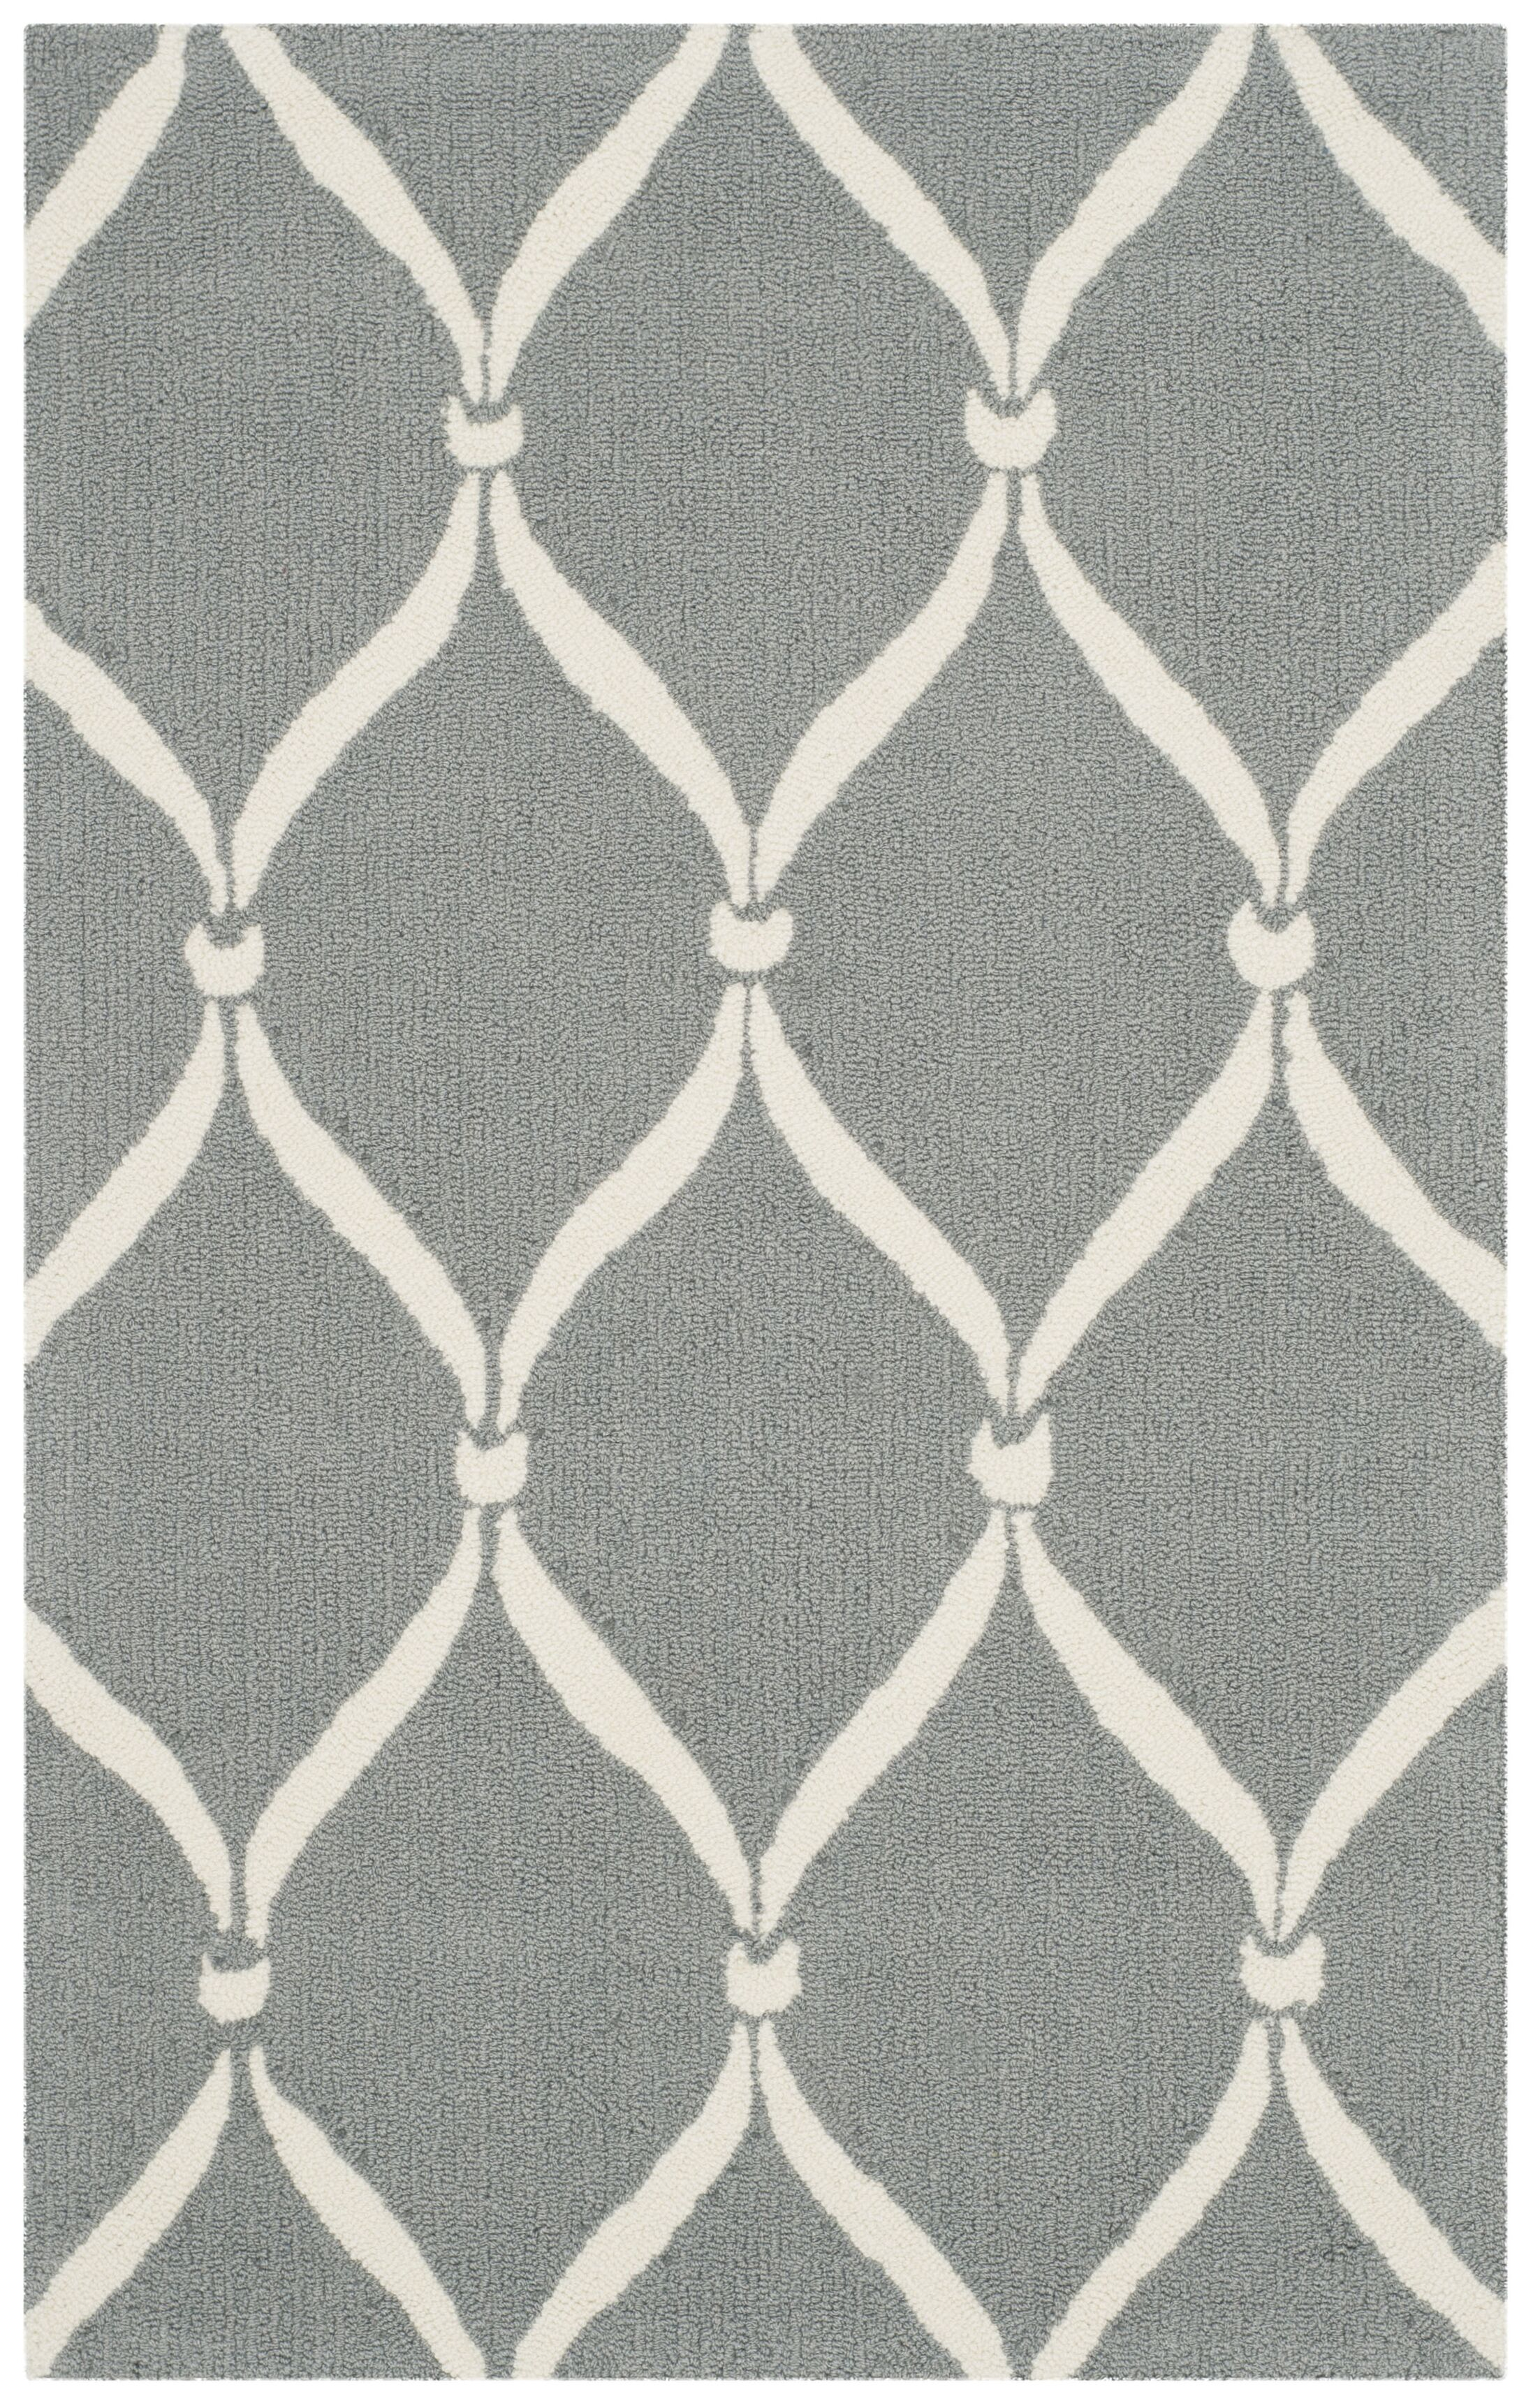 Coventry Gray/Ivory Area Rug Rug Size: Rectangle 8' x 10'